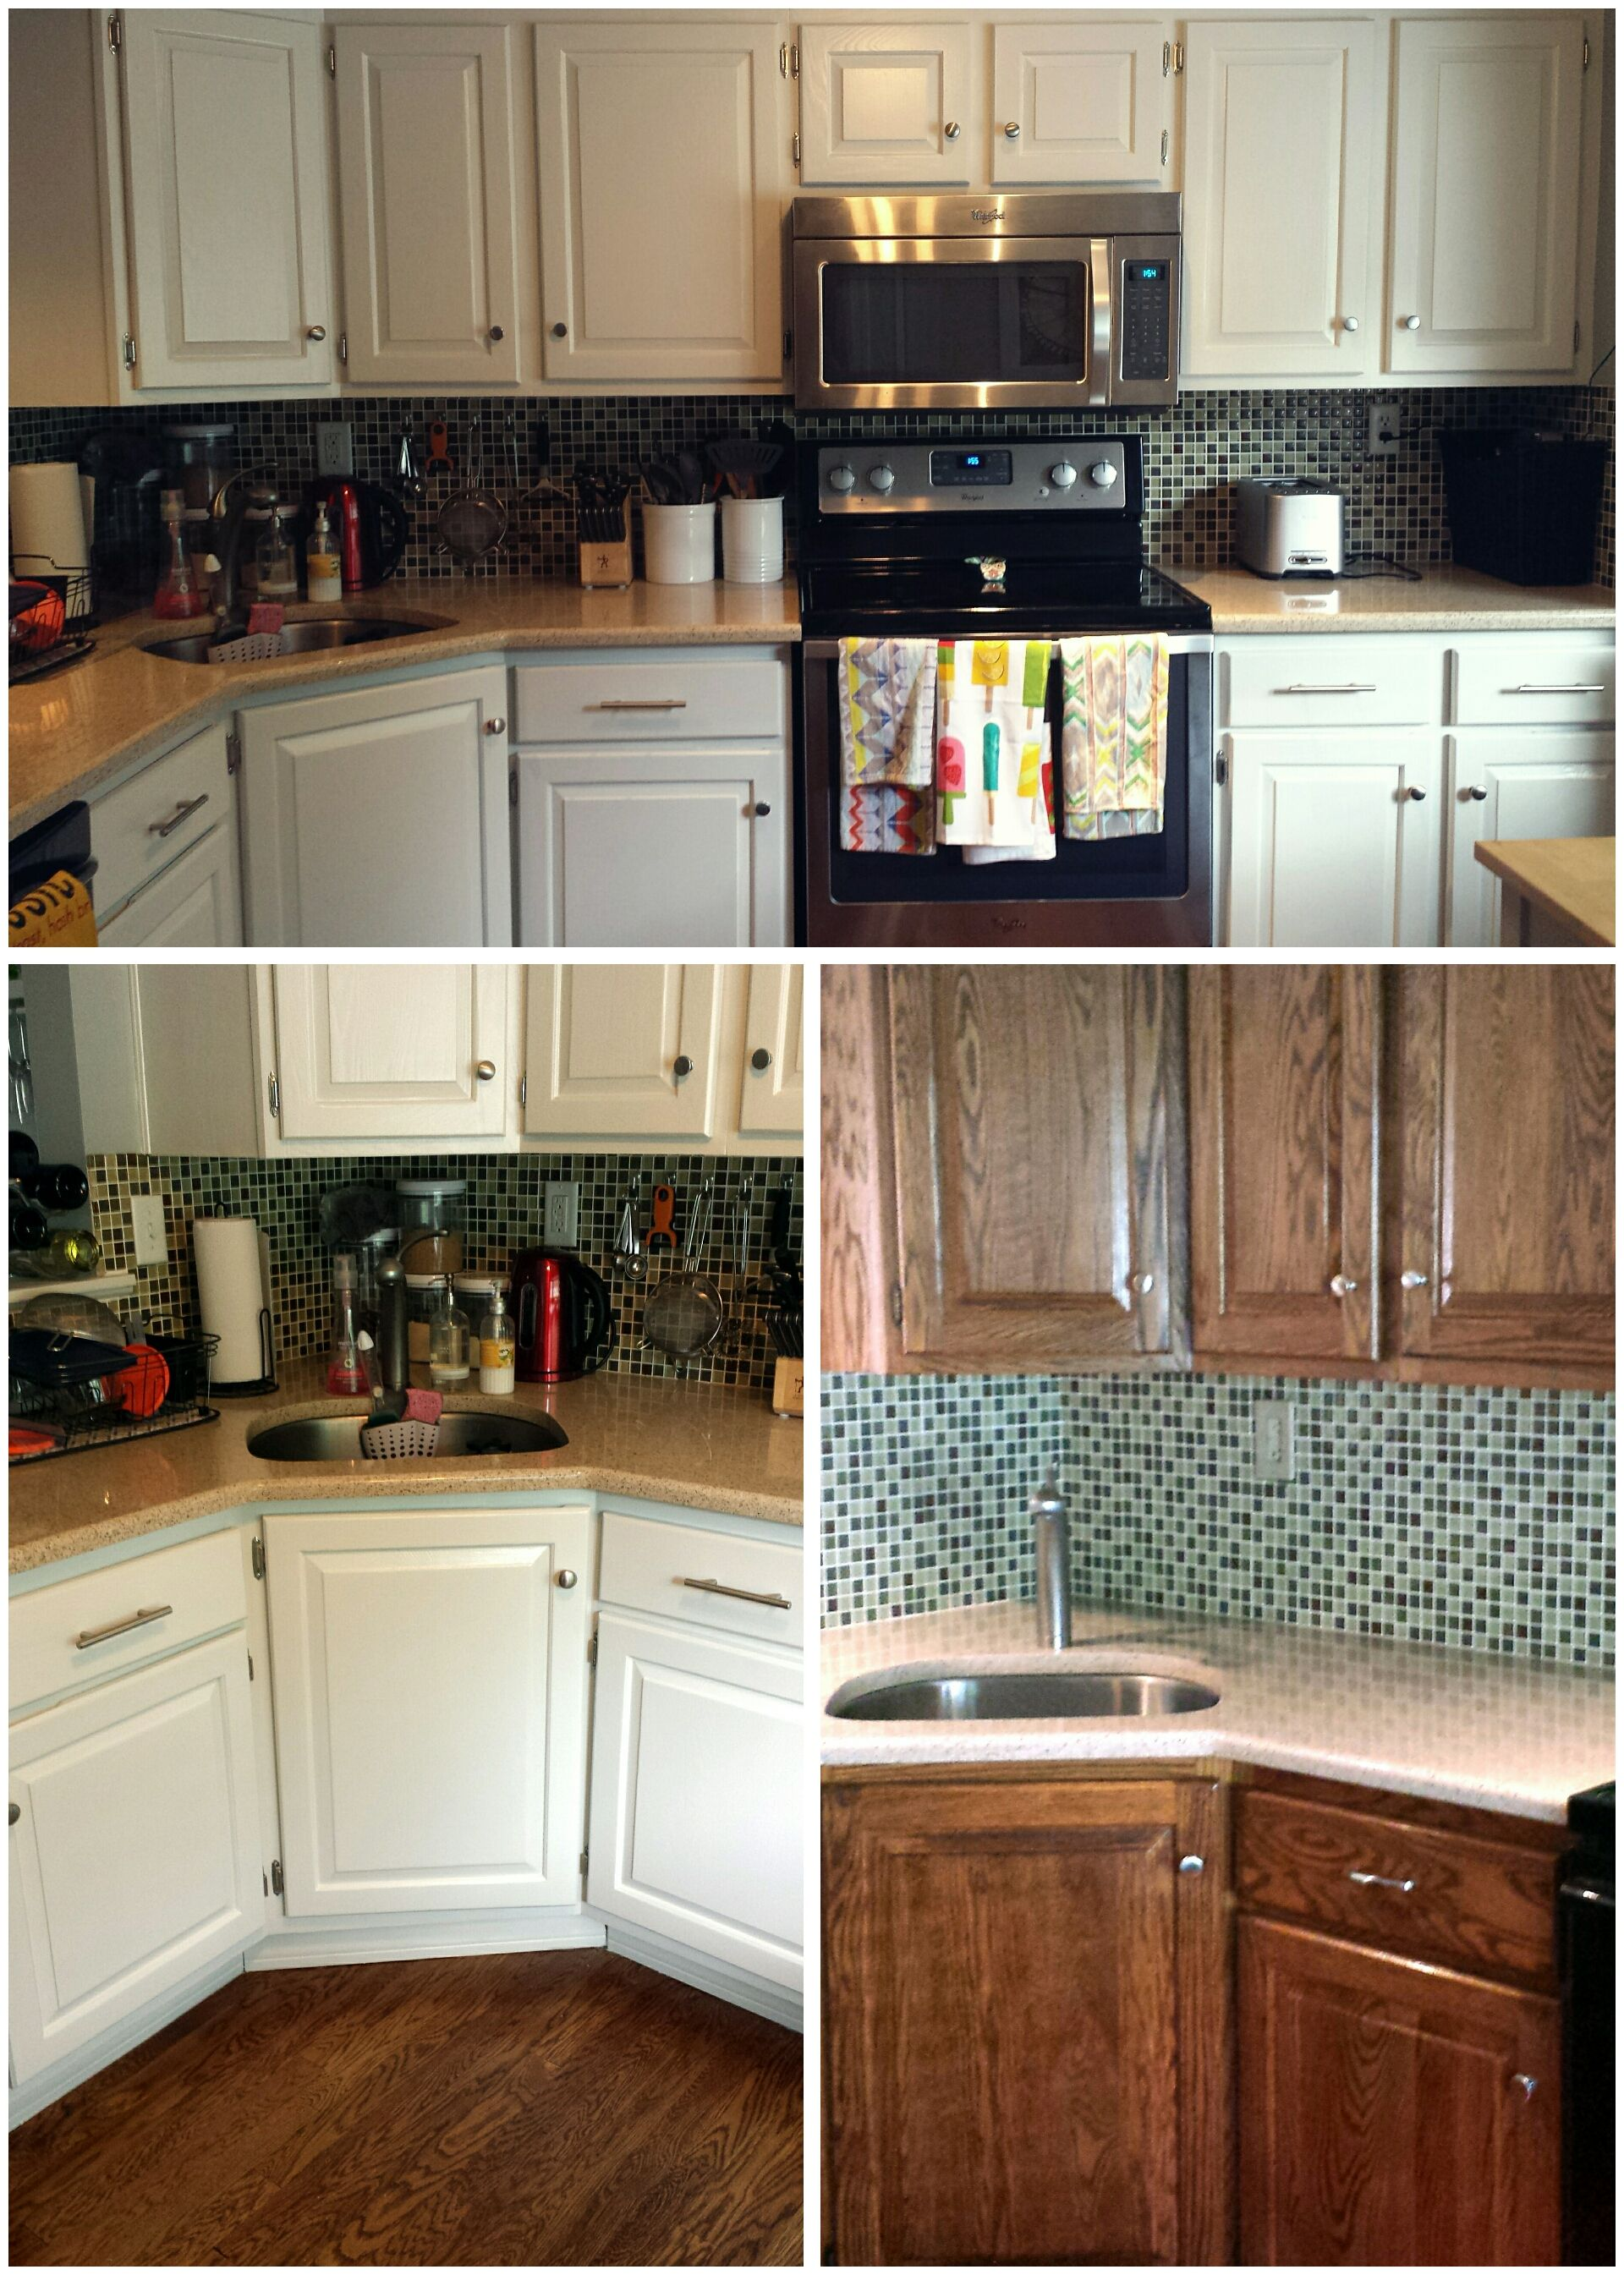 Wood Kitchen Cabinet Makeover From Stained Wood To Origami White Sherwin Williams Kitchen Design Kitchen Cabinets Makeover Kitchen Cabinet Design